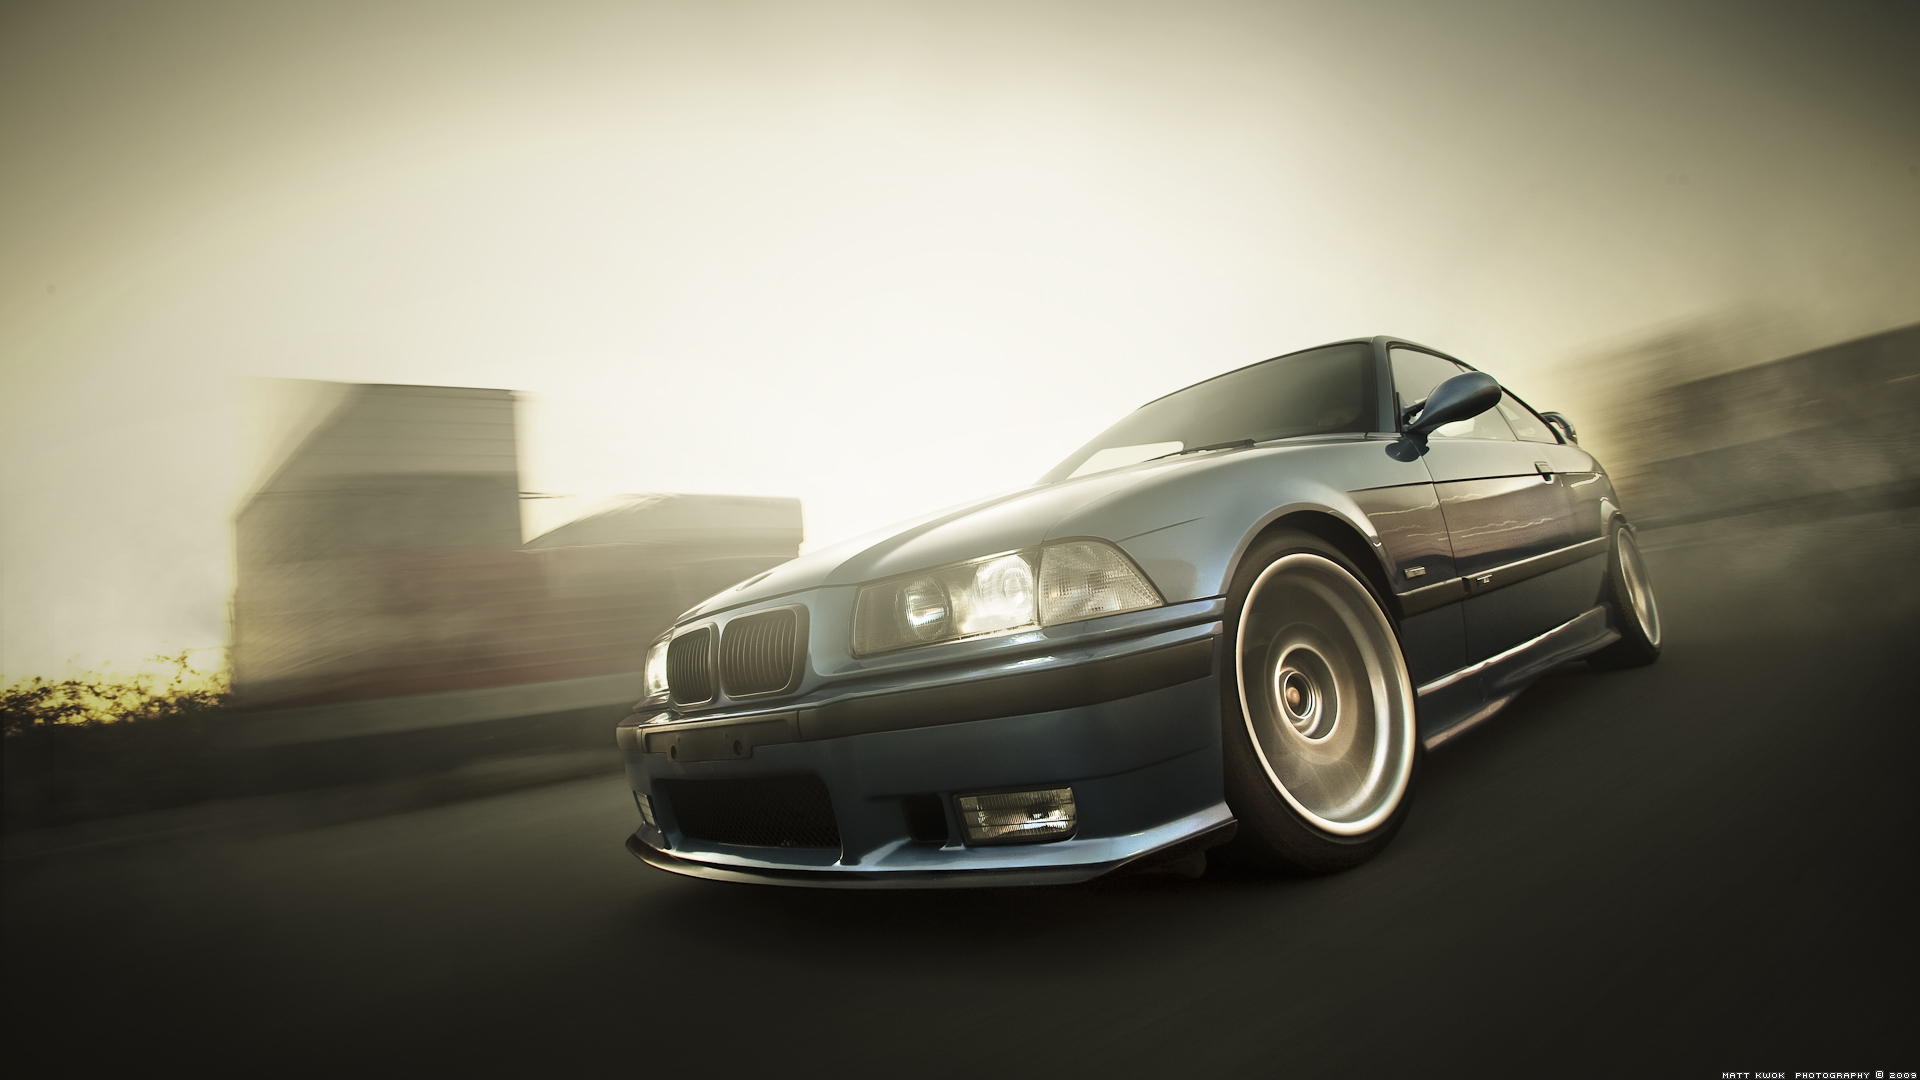 E36 1920 x 1080 Full HD wallpaper 171 matt kwokcom 1920x1080